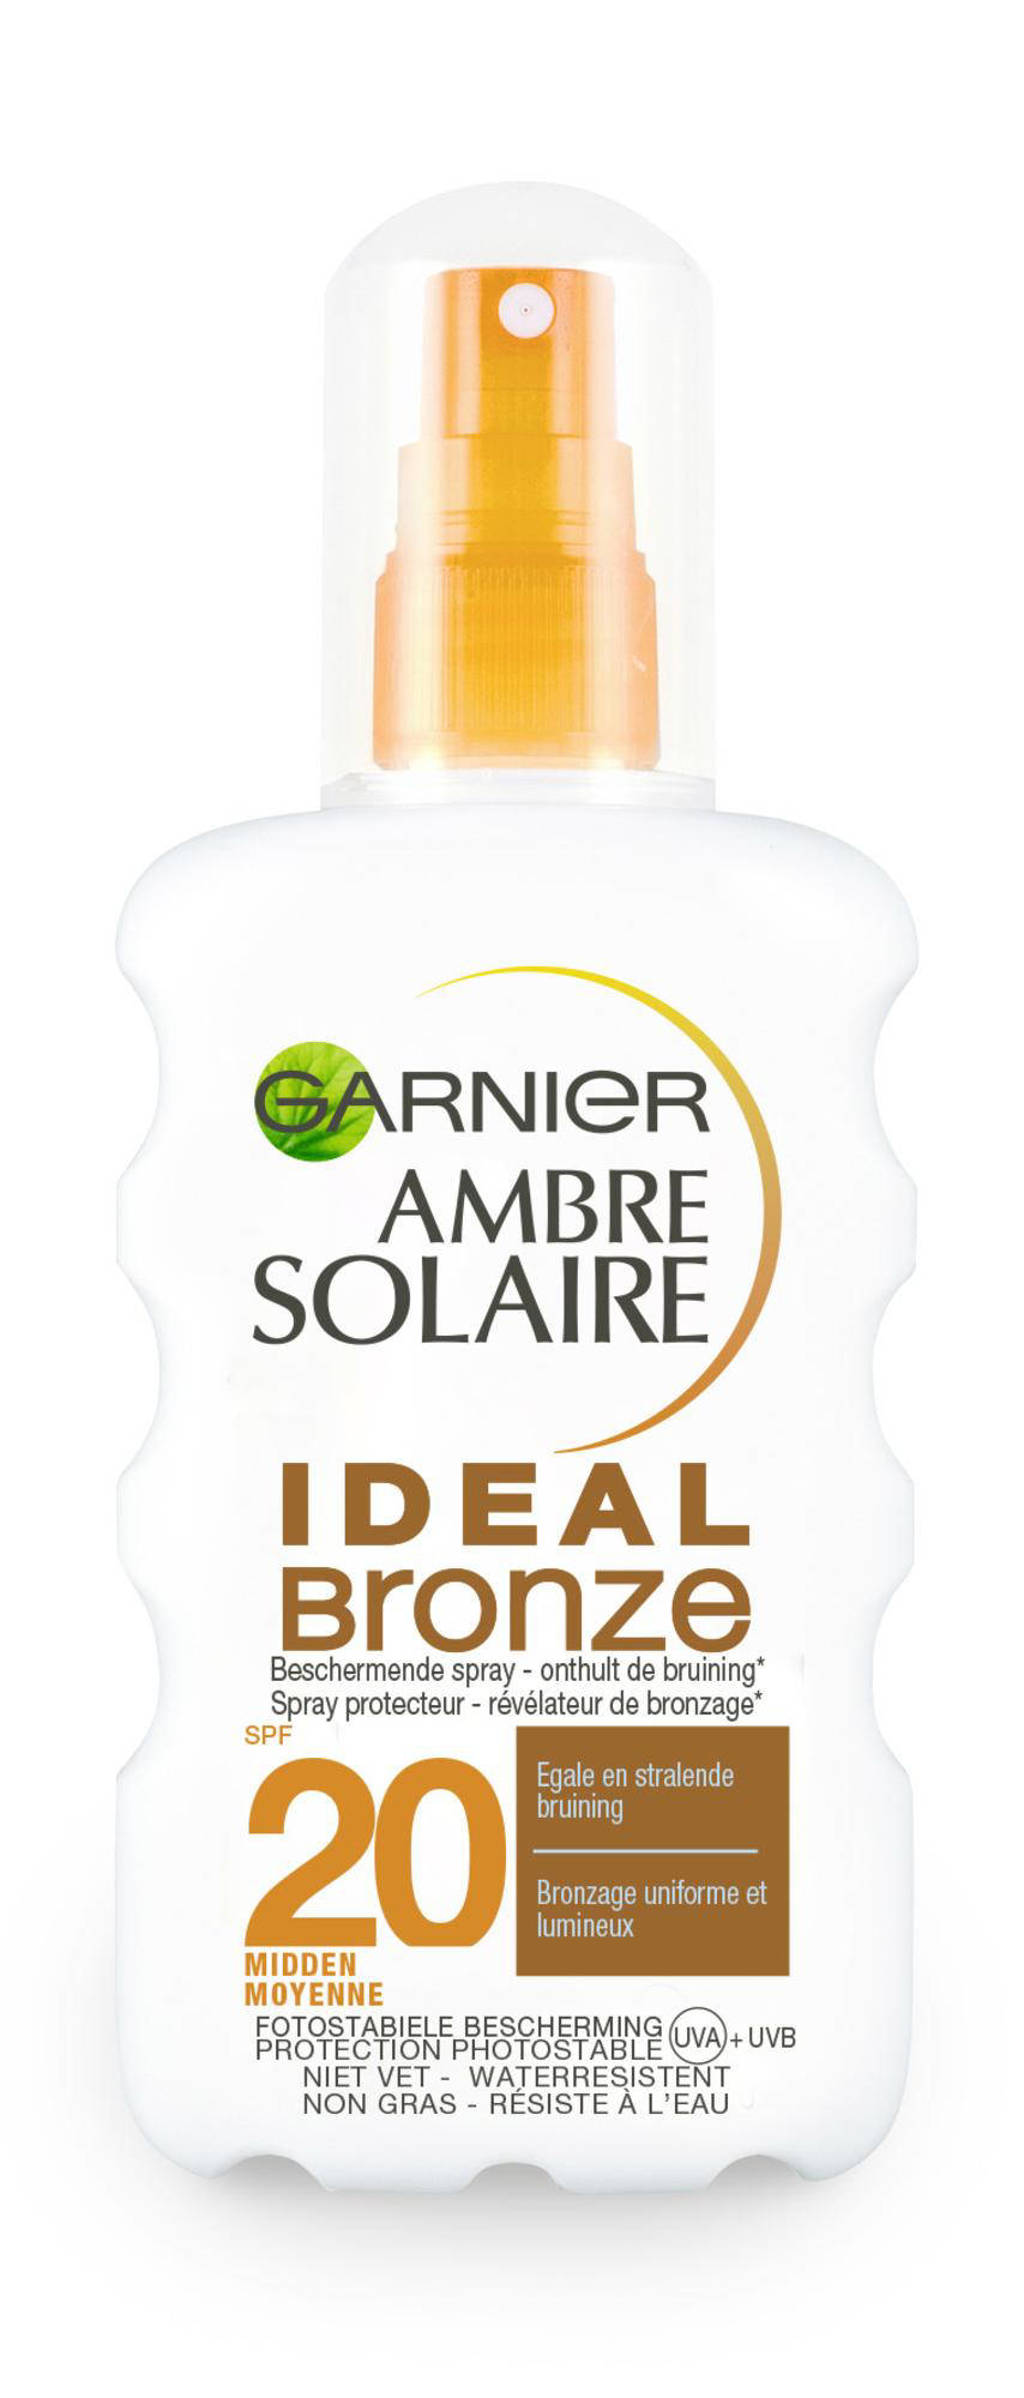 Ambre Solaire Ideal Bronze zonnebrand spray SPF 20 - 200 ml, Zonnefactor SPF 20